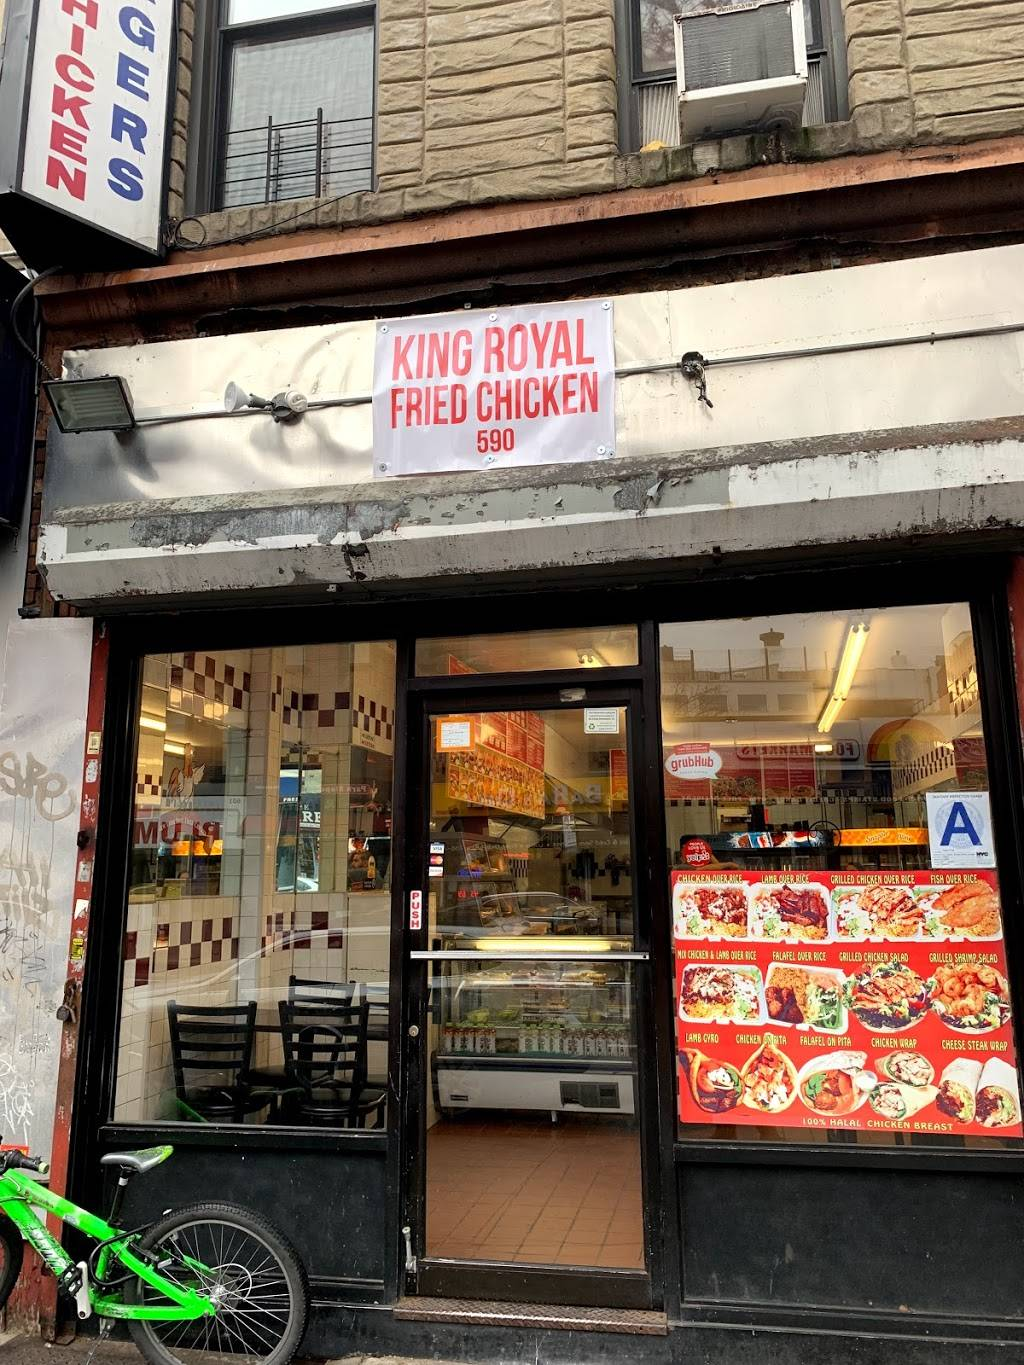 Royal Fried Chicken | meal delivery | 590 5th Ave, Brooklyn, NY 11215, USA | 7189650893 OR +1 718-965-0893